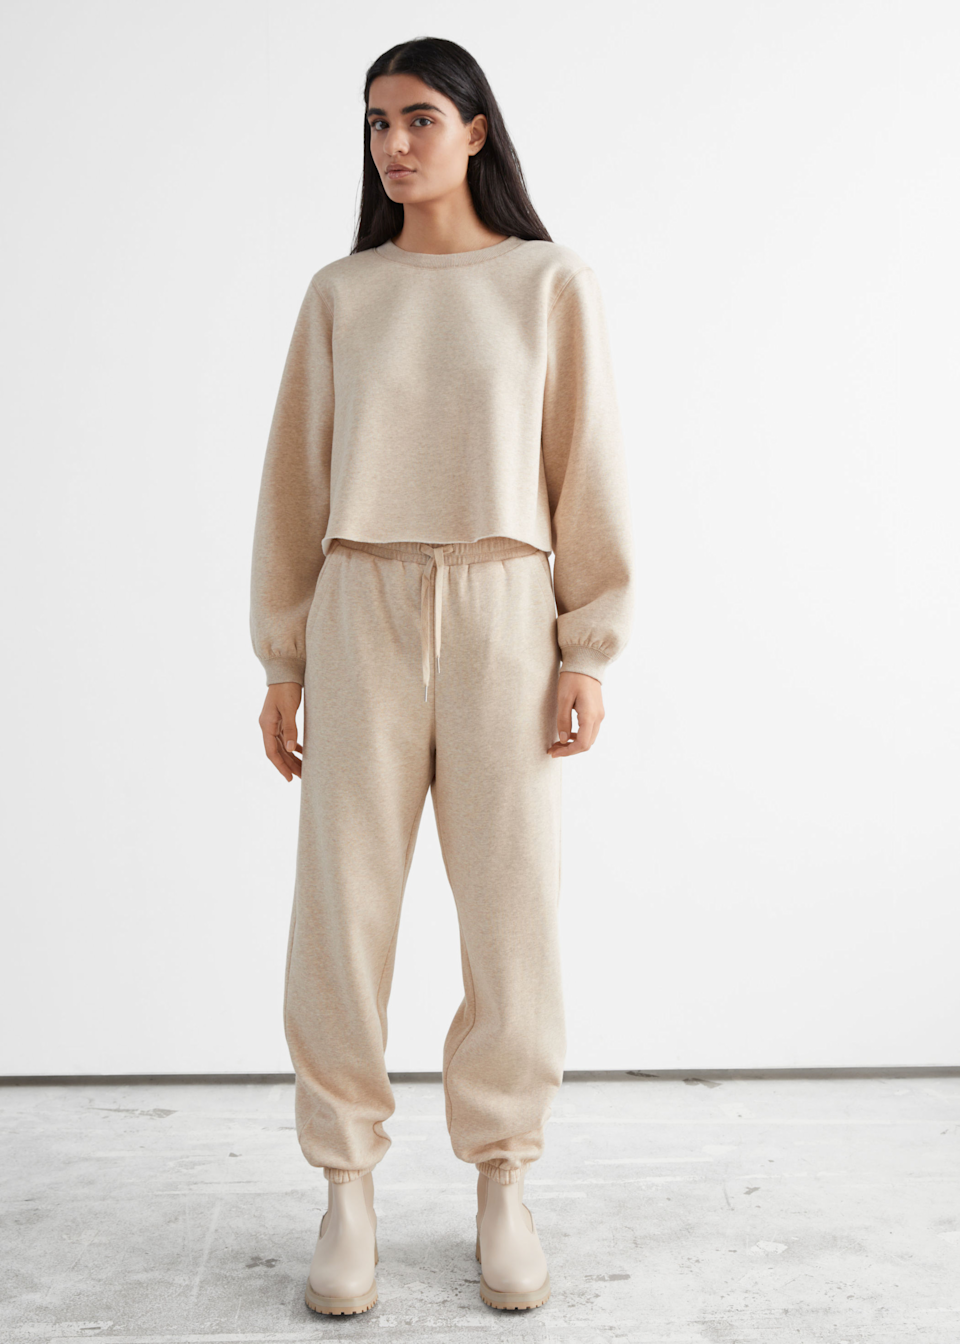 "<h3>& Other Stories</h3><br>This go-to store for floaty dresses and feminine knits has now hopped on the loungewear train. Get them while you still can, they're selling out quick!<br><br><em>Shop </em><strong><em><a href=""https://www.stories.com/"" rel=""nofollow noopener"" target=""_blank"" data-ylk=""slk:& Other Stories"" class=""link rapid-noclick-resp"">& Other Stories</a></em></strong><br><br><strong>& Other Stories</strong> Relaxed Drawstring Trousers, $, available at <a href=""https://go.skimresources.com/?id=30283X879131&url=https%3A%2F%2Fwww.stories.com%2Fen_usd%2Fclothing%2Ftrousers%2Fproduct.relaxed-drawstring-trousers-beige.0929103003.html"" rel=""nofollow noopener"" target=""_blank"" data-ylk=""slk:& Other Stories"" class=""link rapid-noclick-resp"">& Other Stories</a><br><br><strong>& Other Stories</strong> Boxy Jersey Sweater, $, available at <a href=""https://go.skimresources.com/?id=30283X879131&url=https%3A%2F%2Fwww.stories.com%2Fen_usd%2Fclothing%2Ftops%2Fsweatshirts-hoodies%2Fproduct.boxy-jersey-sweater-beige.0929102003.html"" rel=""nofollow noopener"" target=""_blank"" data-ylk=""slk:& Other Stories"" class=""link rapid-noclick-resp"">& Other Stories</a>"